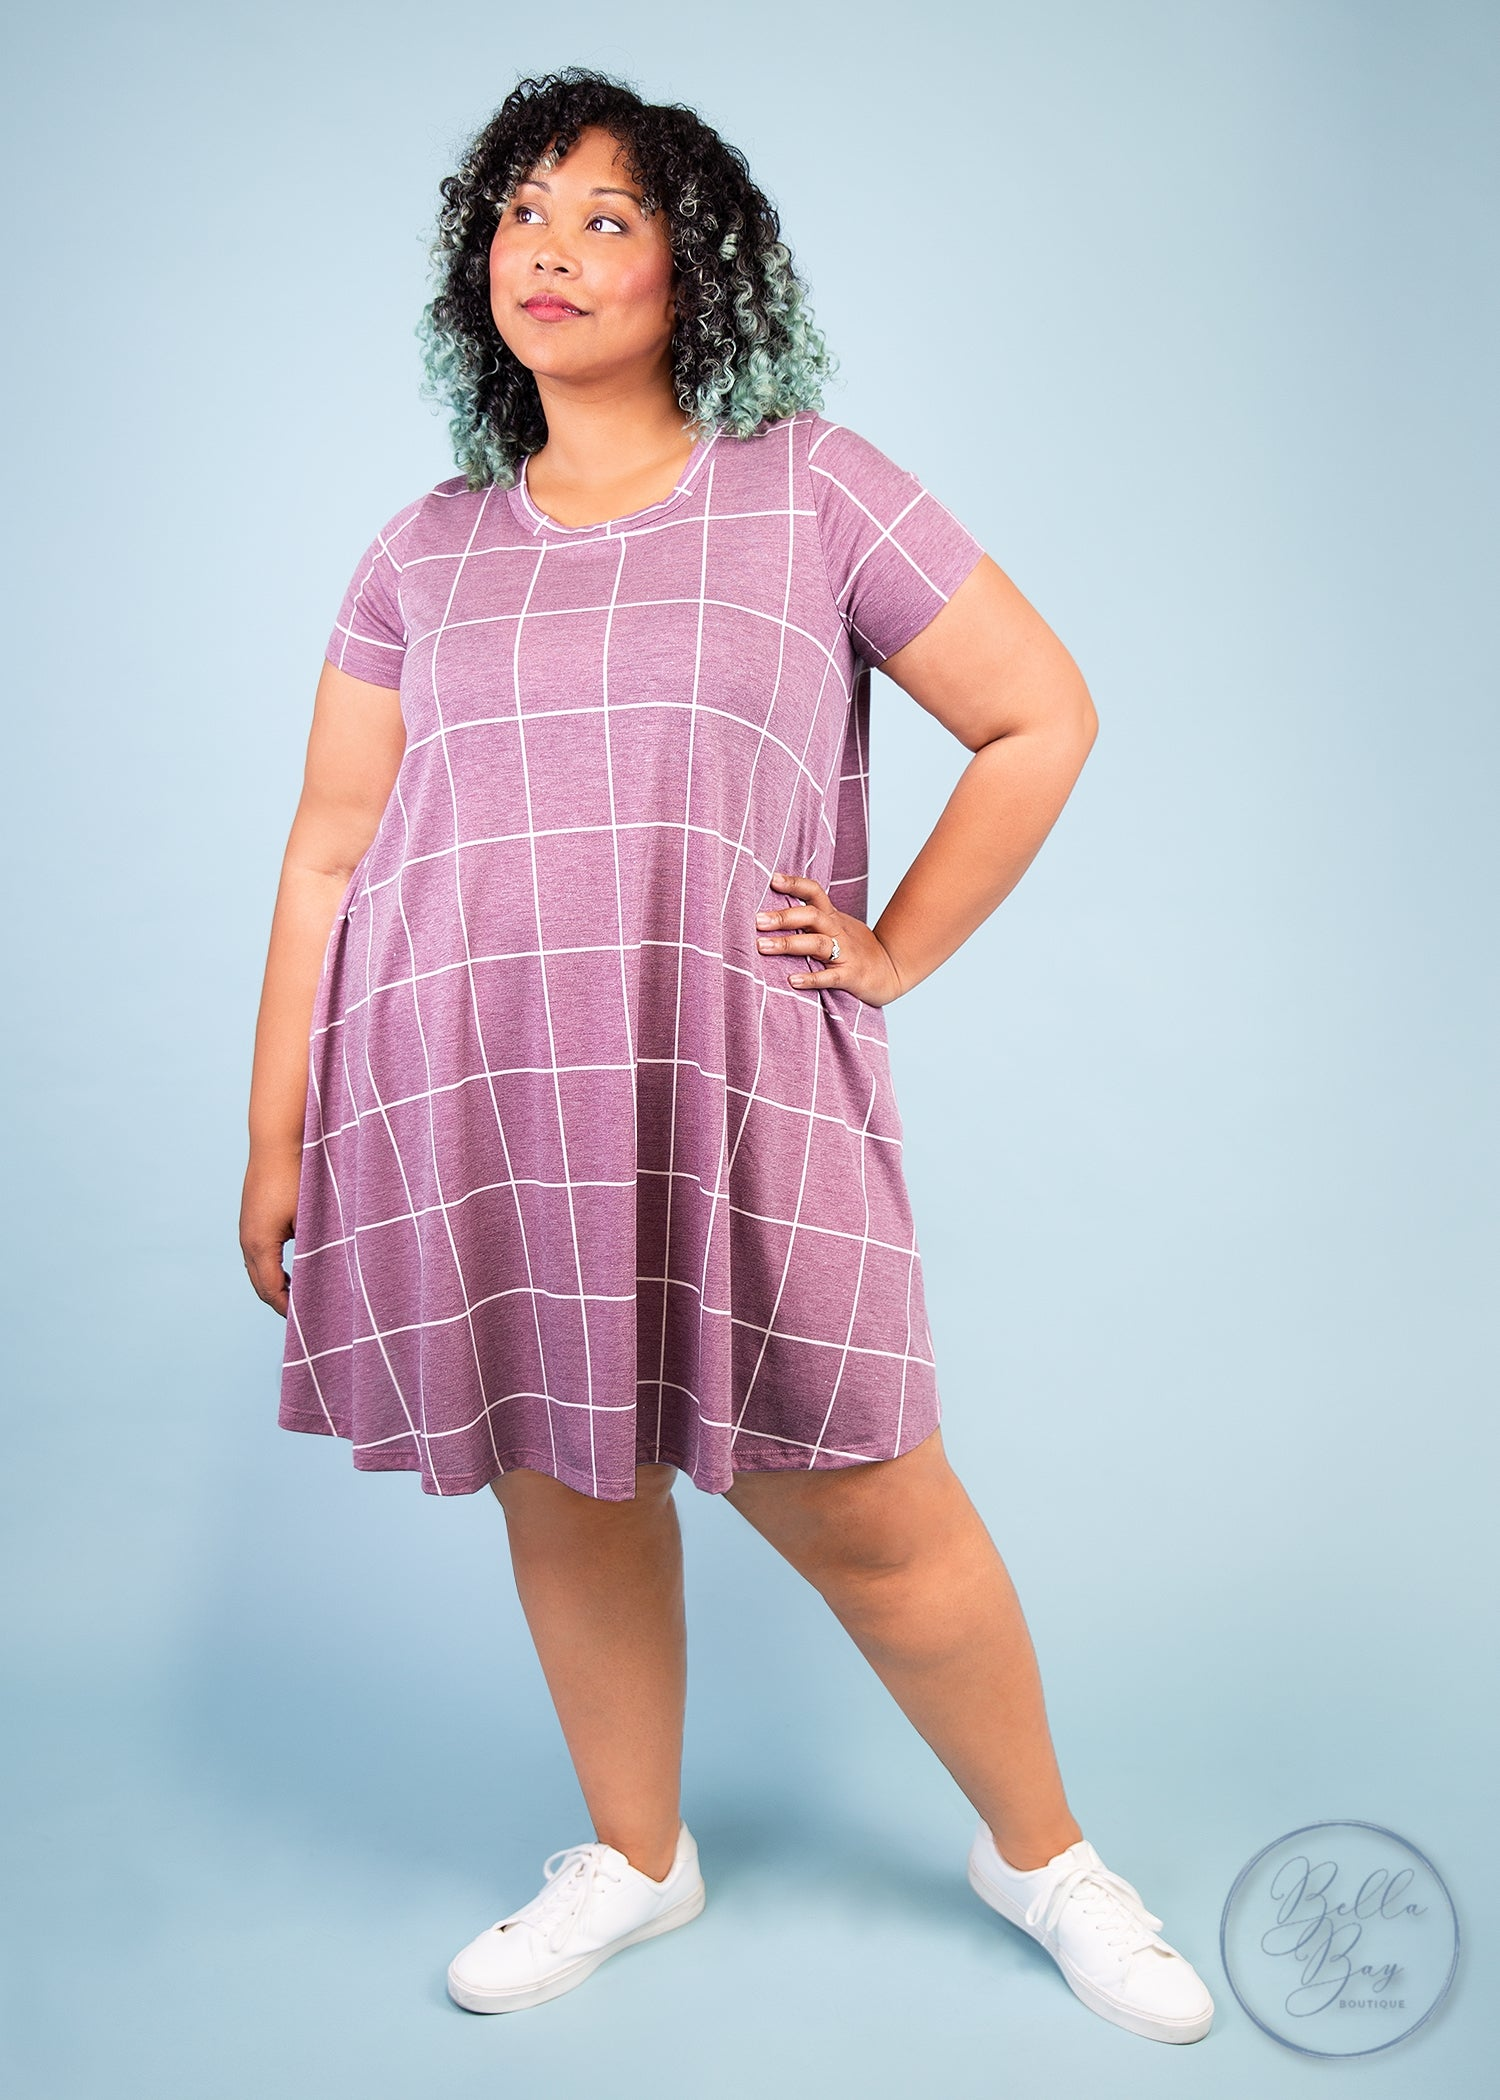 Paisley Raye Iris Swing Dress- Mauve and White Grid (XS) - Paisley Raye with Bella Bay Boutique, shop now at  https://shopbellabay.com/ or locally in Newport Oregon